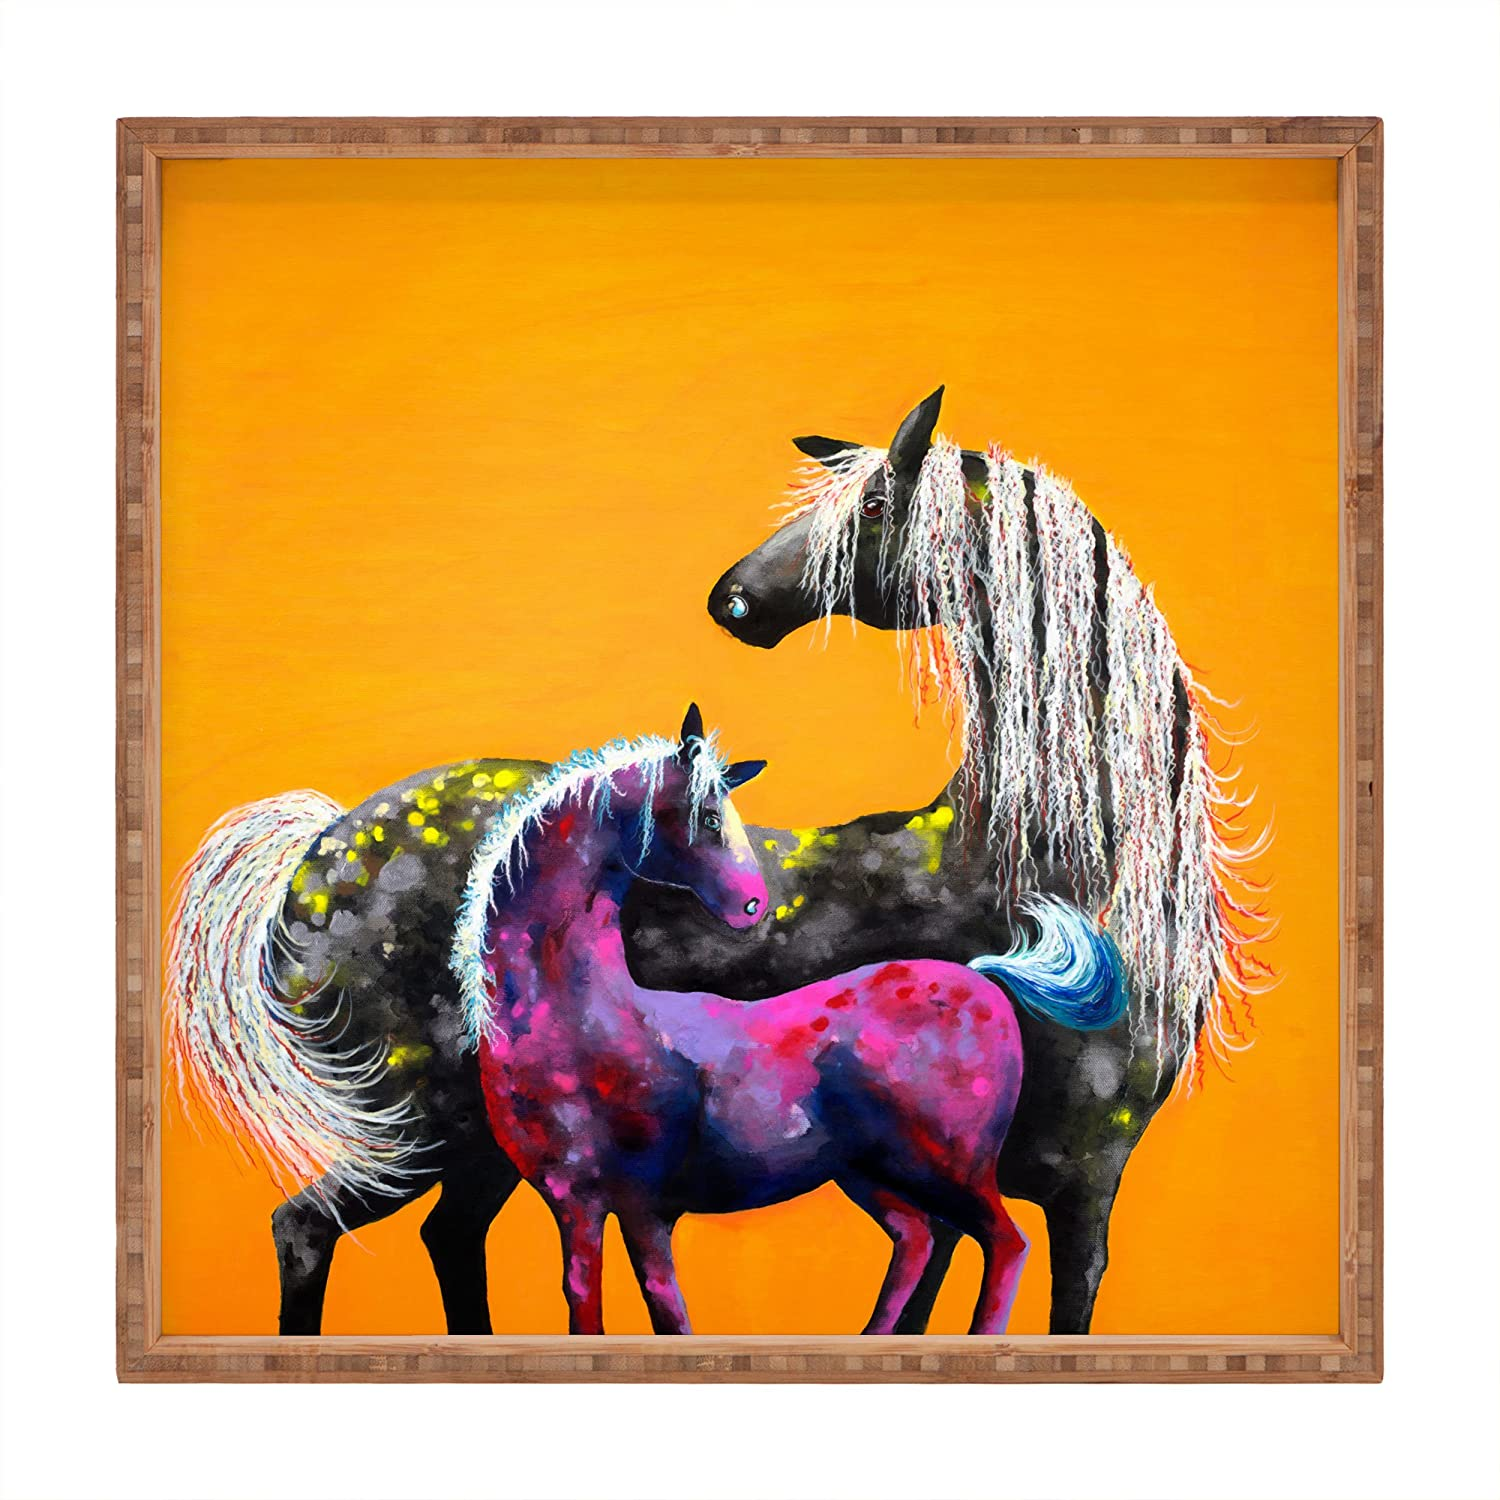 Deny Designs Clara Nilles Painted Ponies On Papaya Creme Indoor//Outdoor Square Tray Large//16 x 16